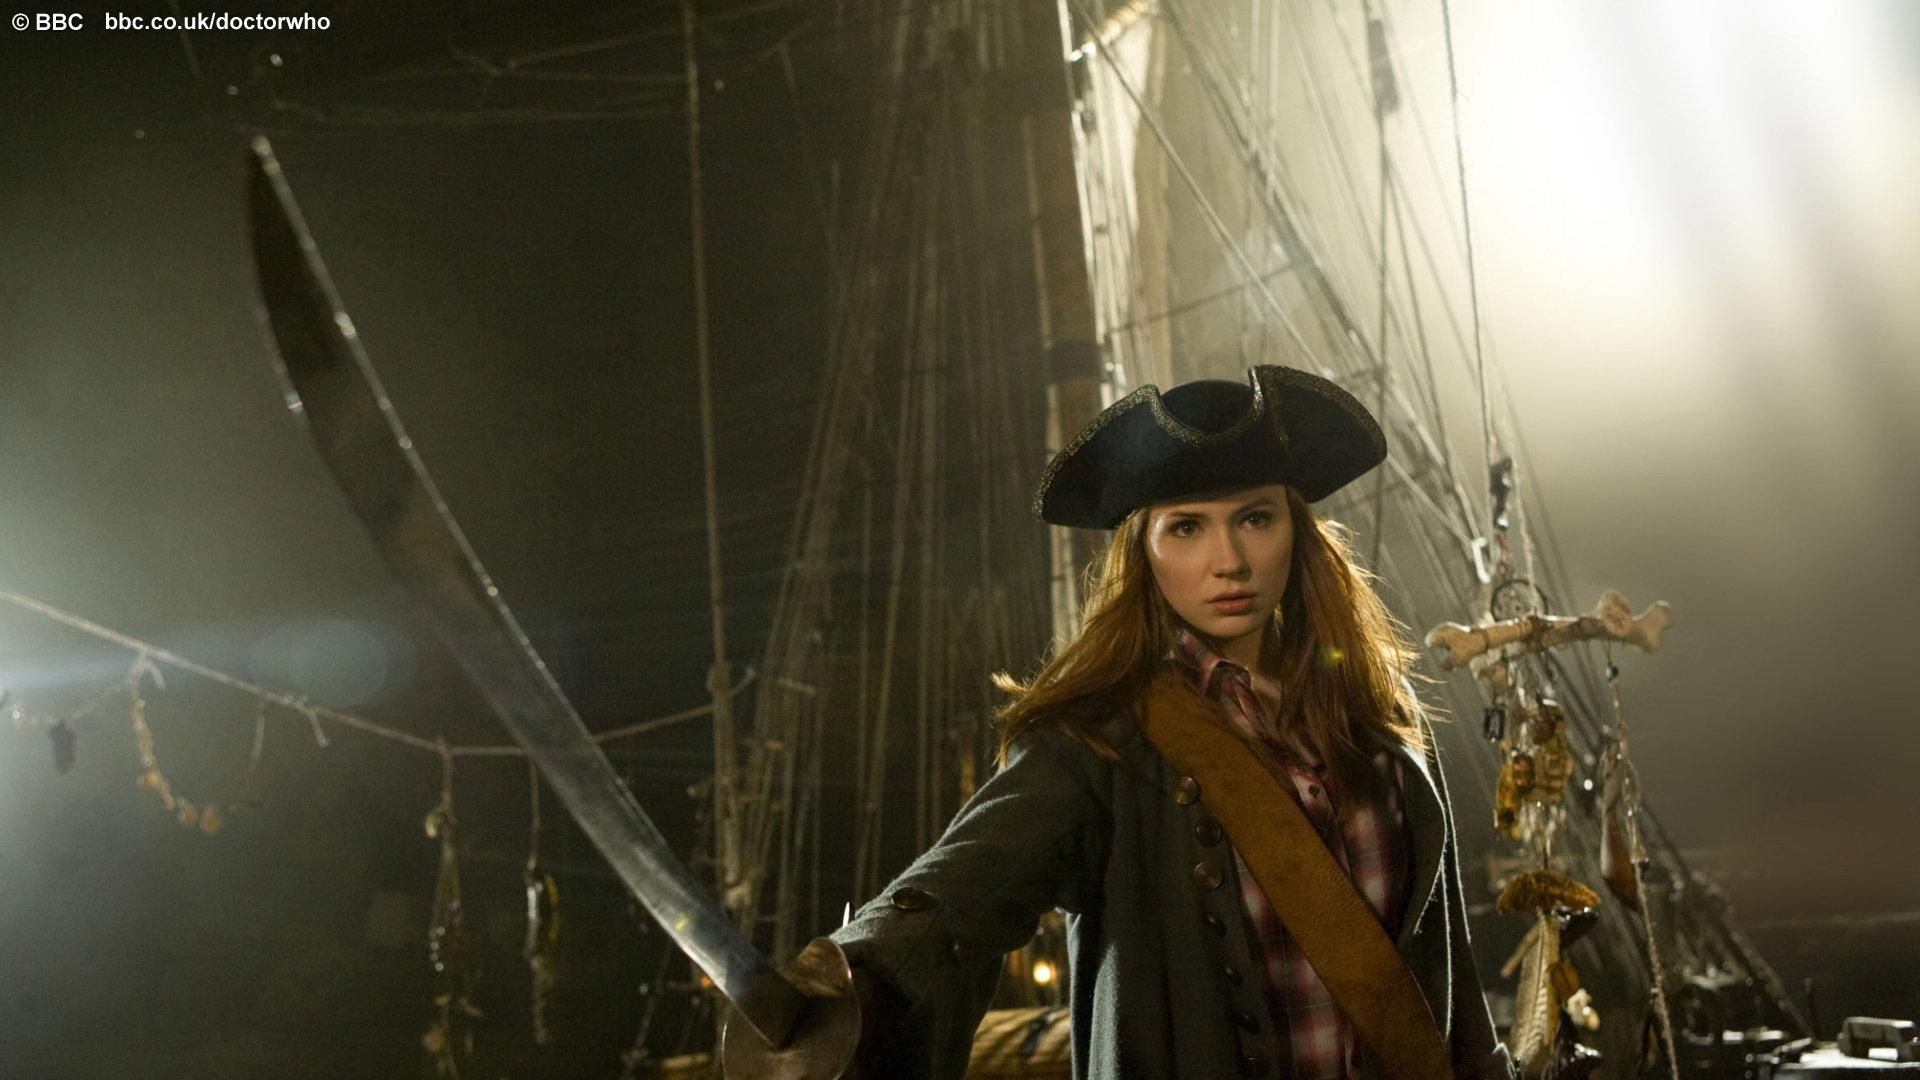 Amy Pond, the pirate !